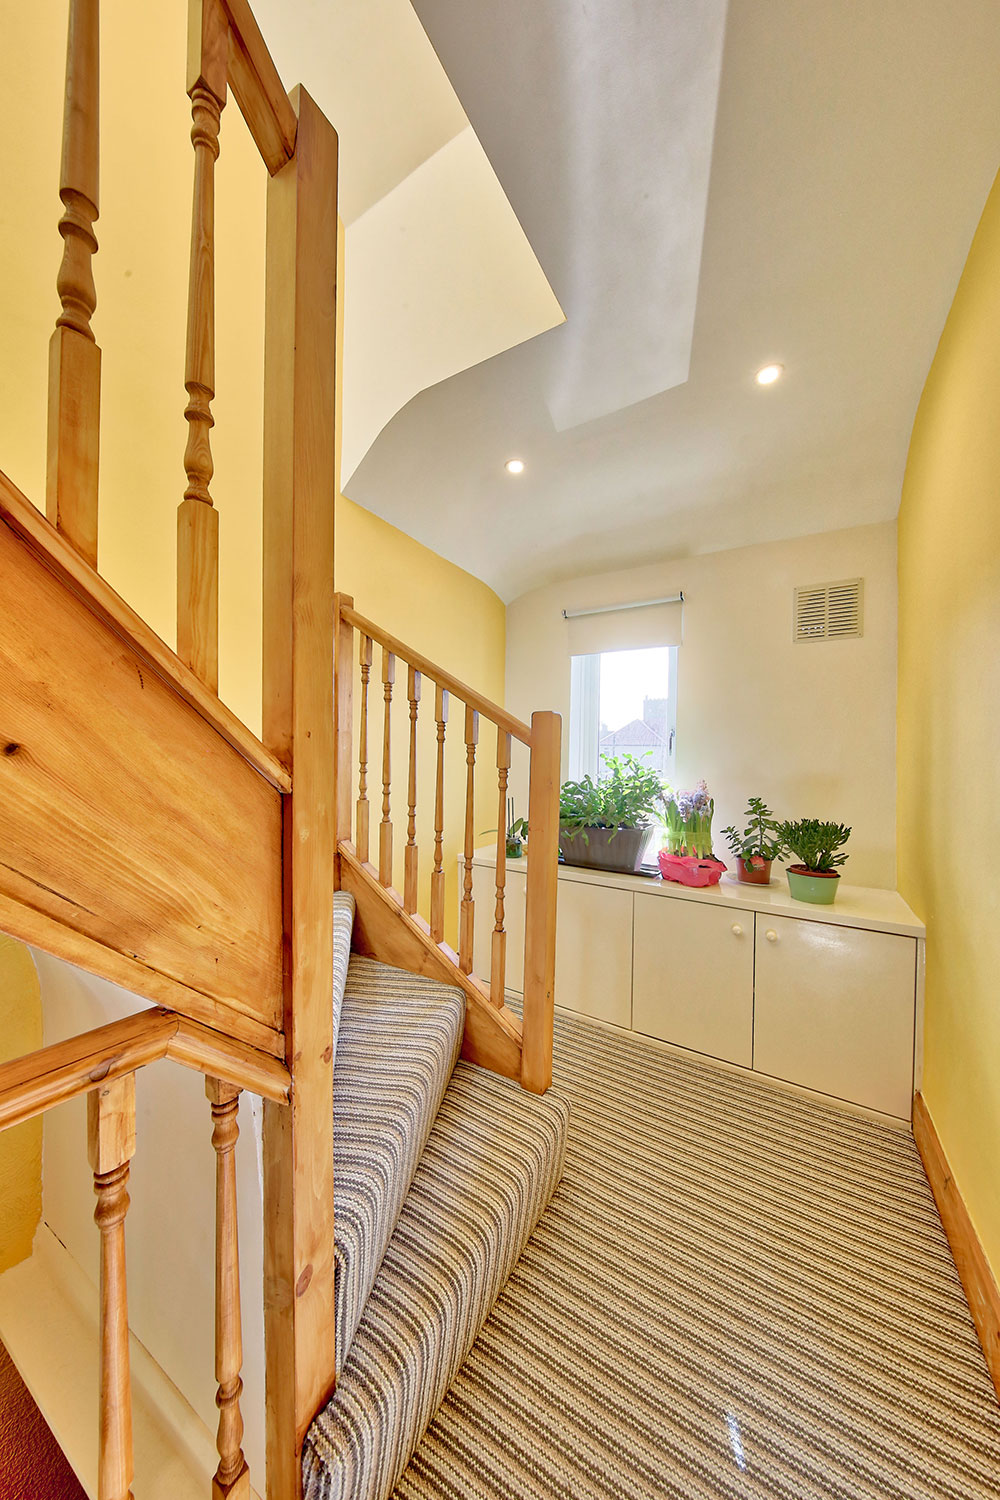 Interior image of loft conversion on Hawkes Road, Mitcham